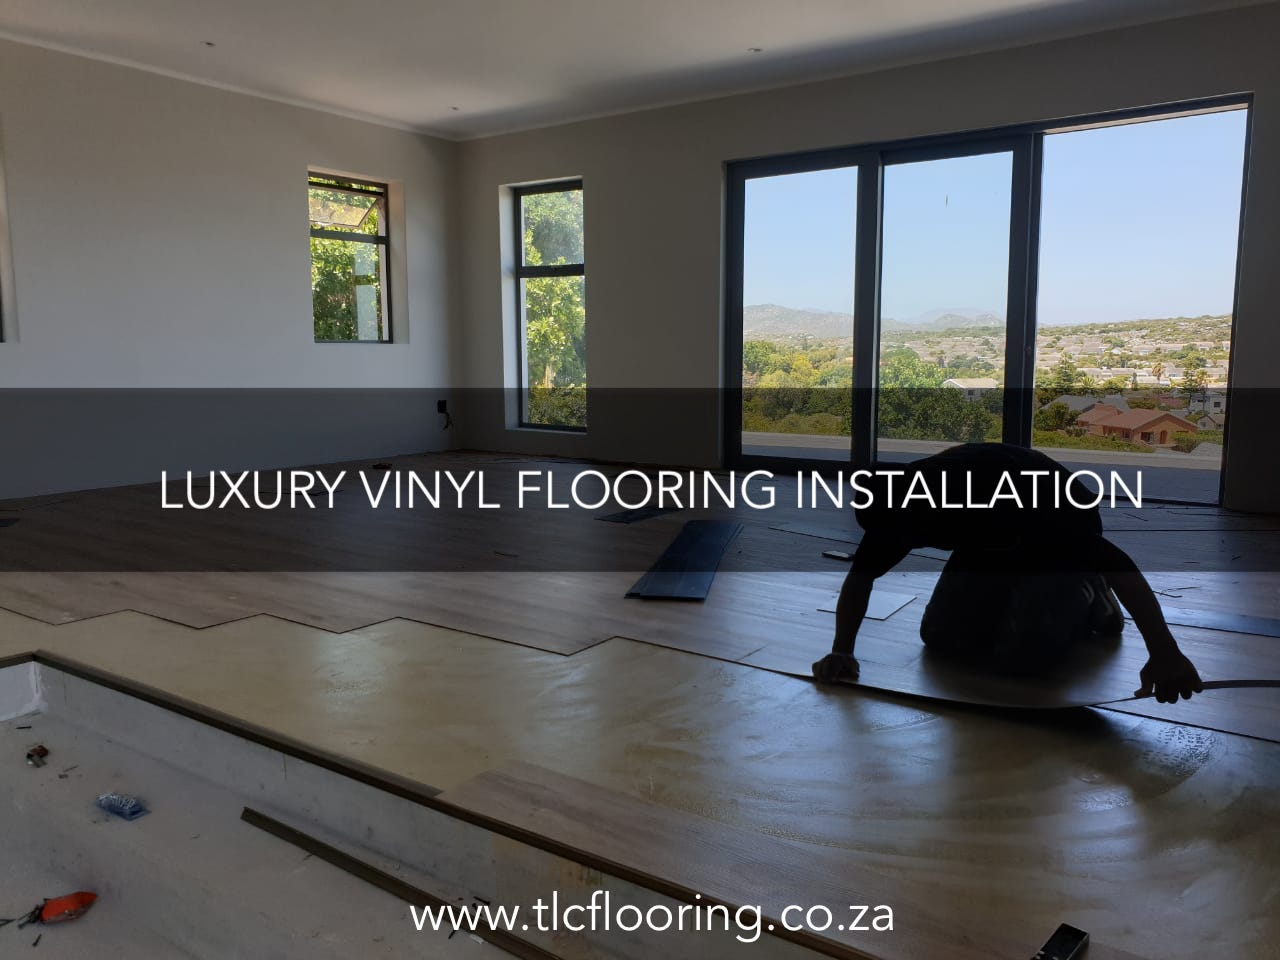 luxury vinyl flooring cape town tlc flooring 1a